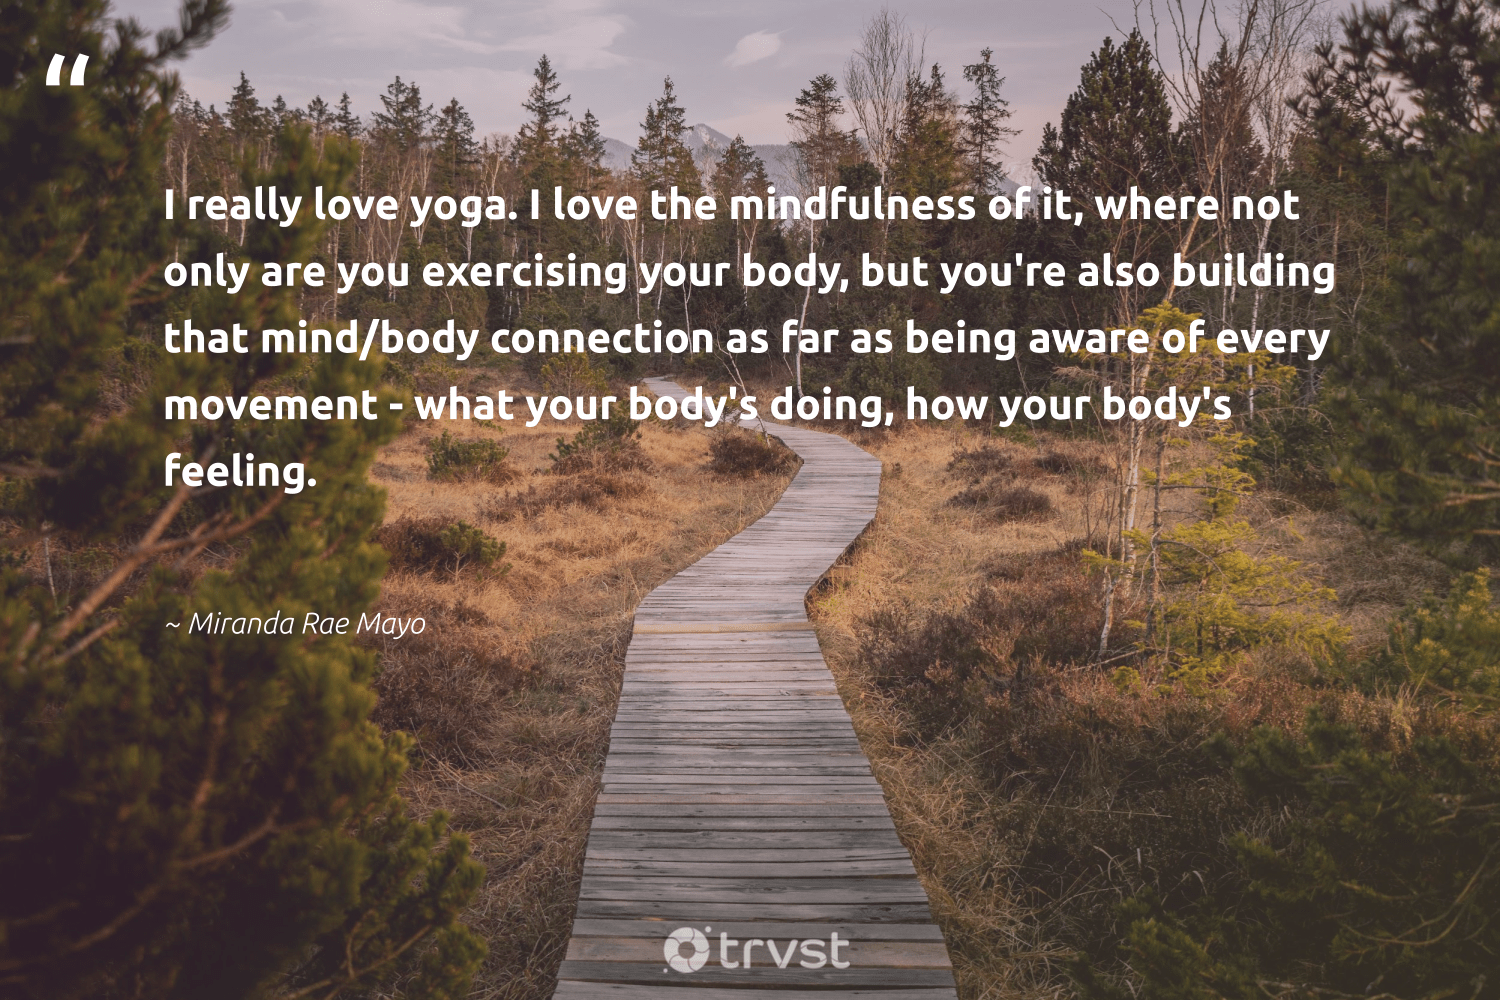 """""""I really love yoga. I love the mindfulness of it, where not only are you exercising your body, but you're also building that mind/body connection as far as being aware of every movement - what your body's doing, how your body's feeling.""""  - Miranda Rae Mayo #trvst #quotes #love #yoga #mindfulness #meditation #positivity #changemakers #socialimpact #mindset #kindness #nevergiveup"""